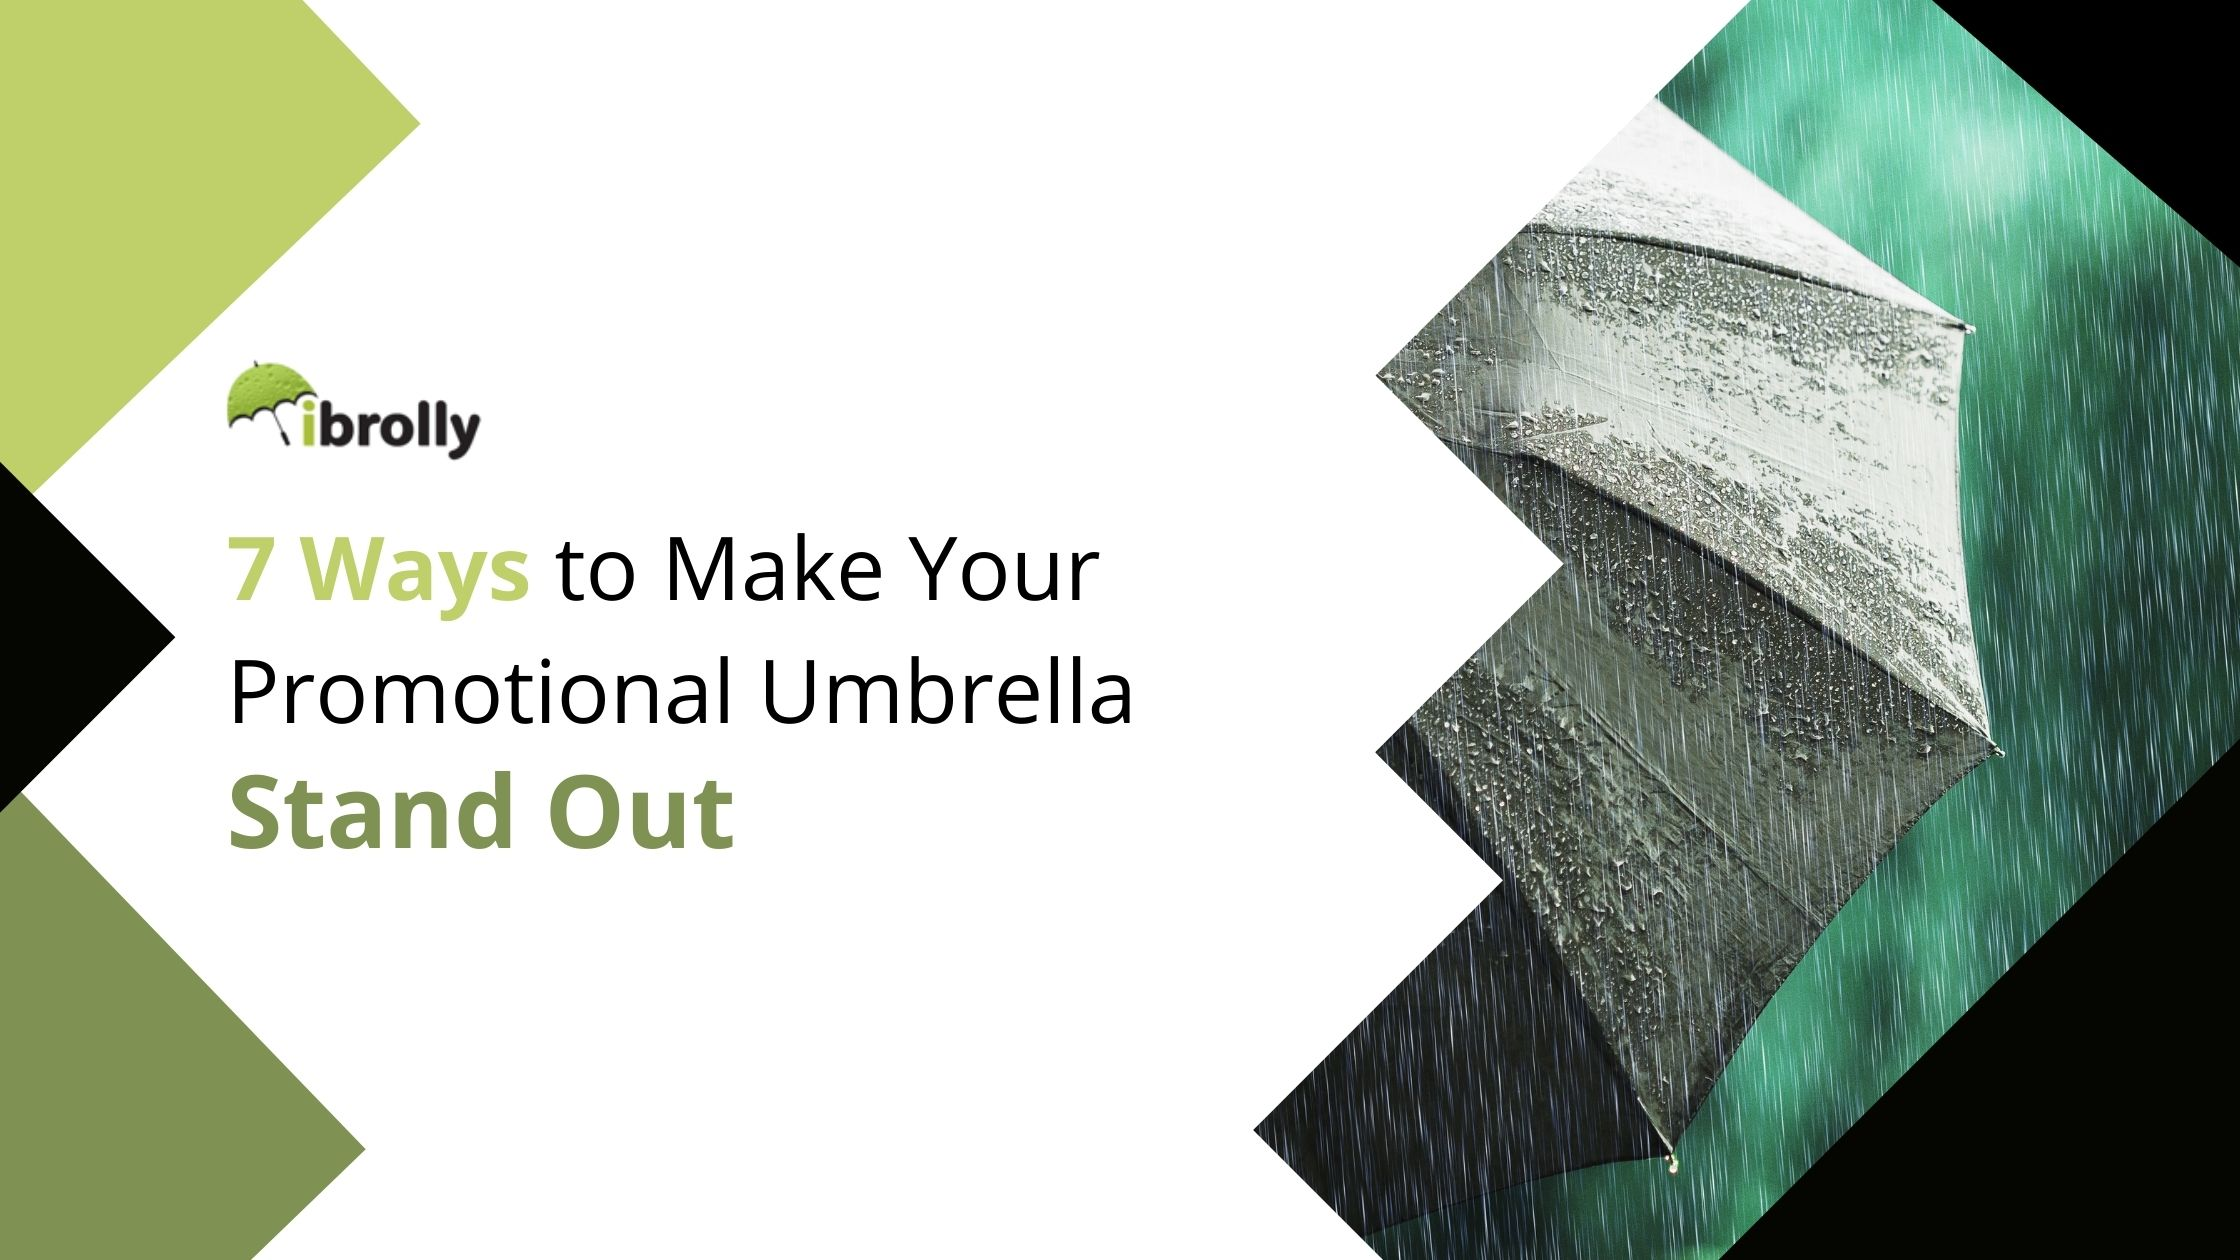 7 ways to make your promotional umbrella stand out